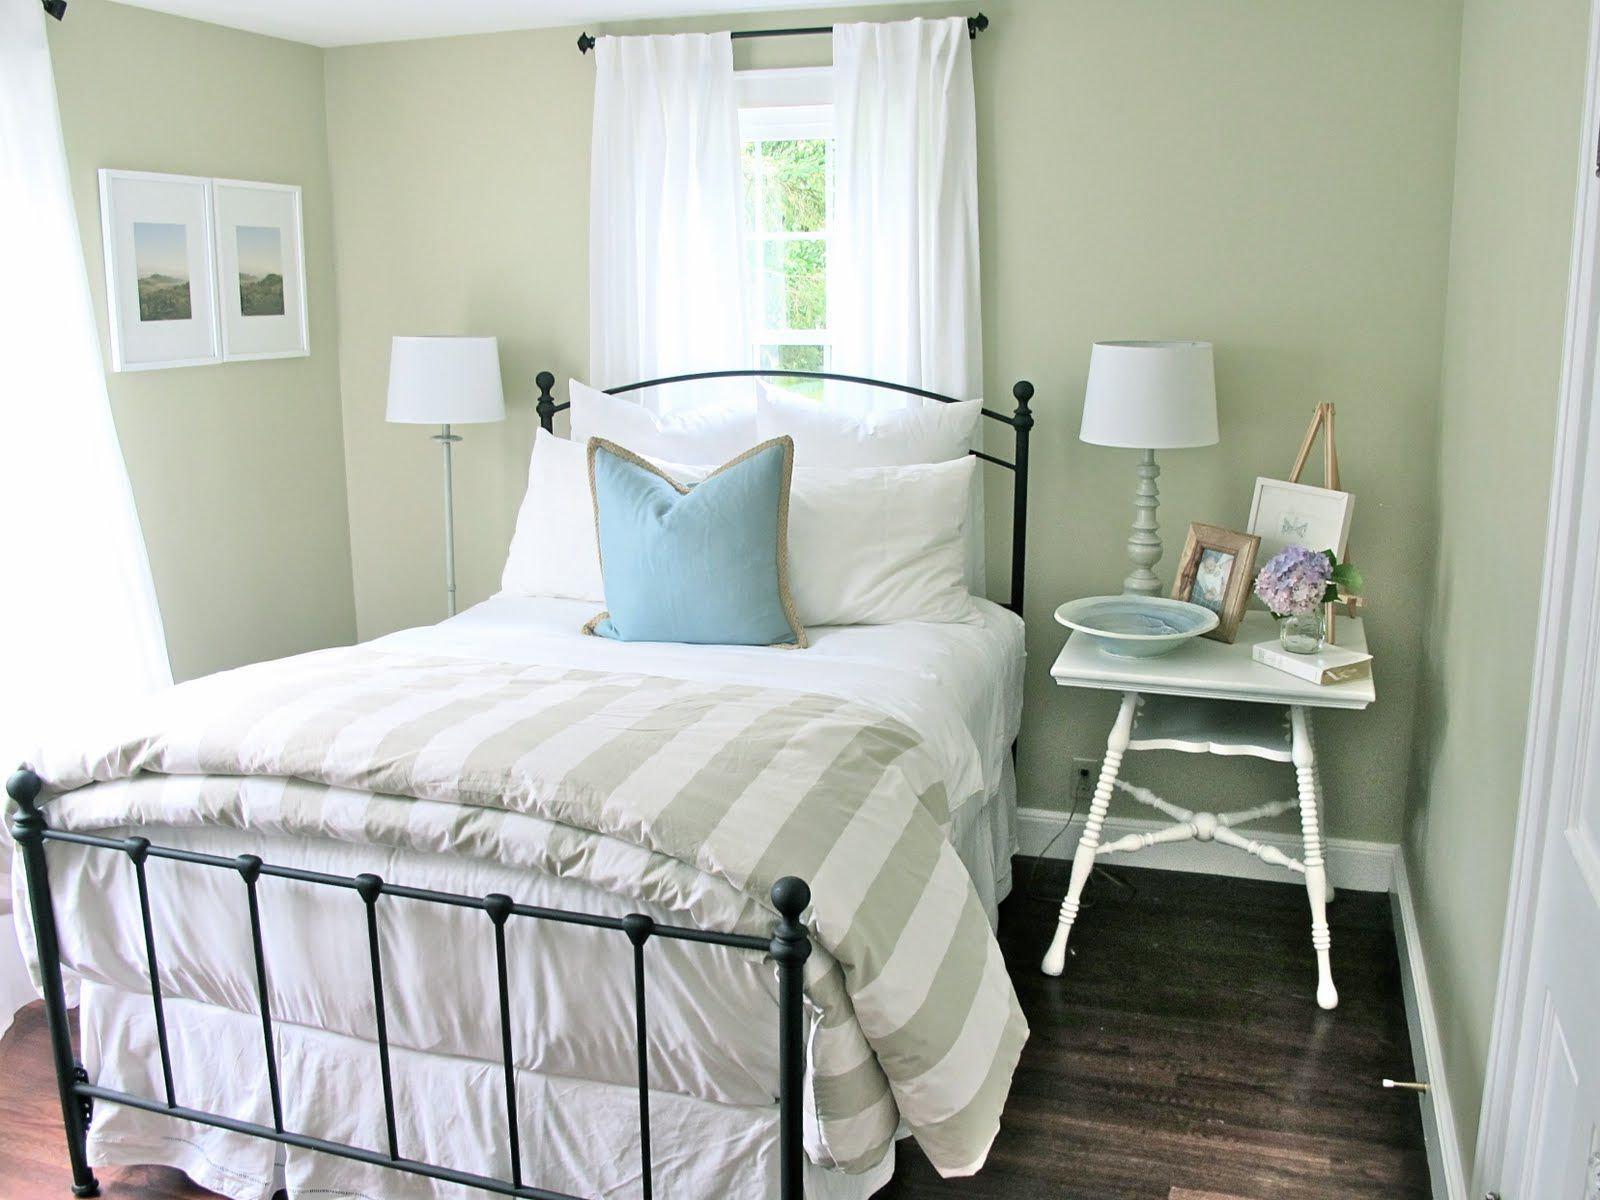 1000 images about Guest room ideas on Pinterest. How To Decorate A Guest Bedroom On A Budget